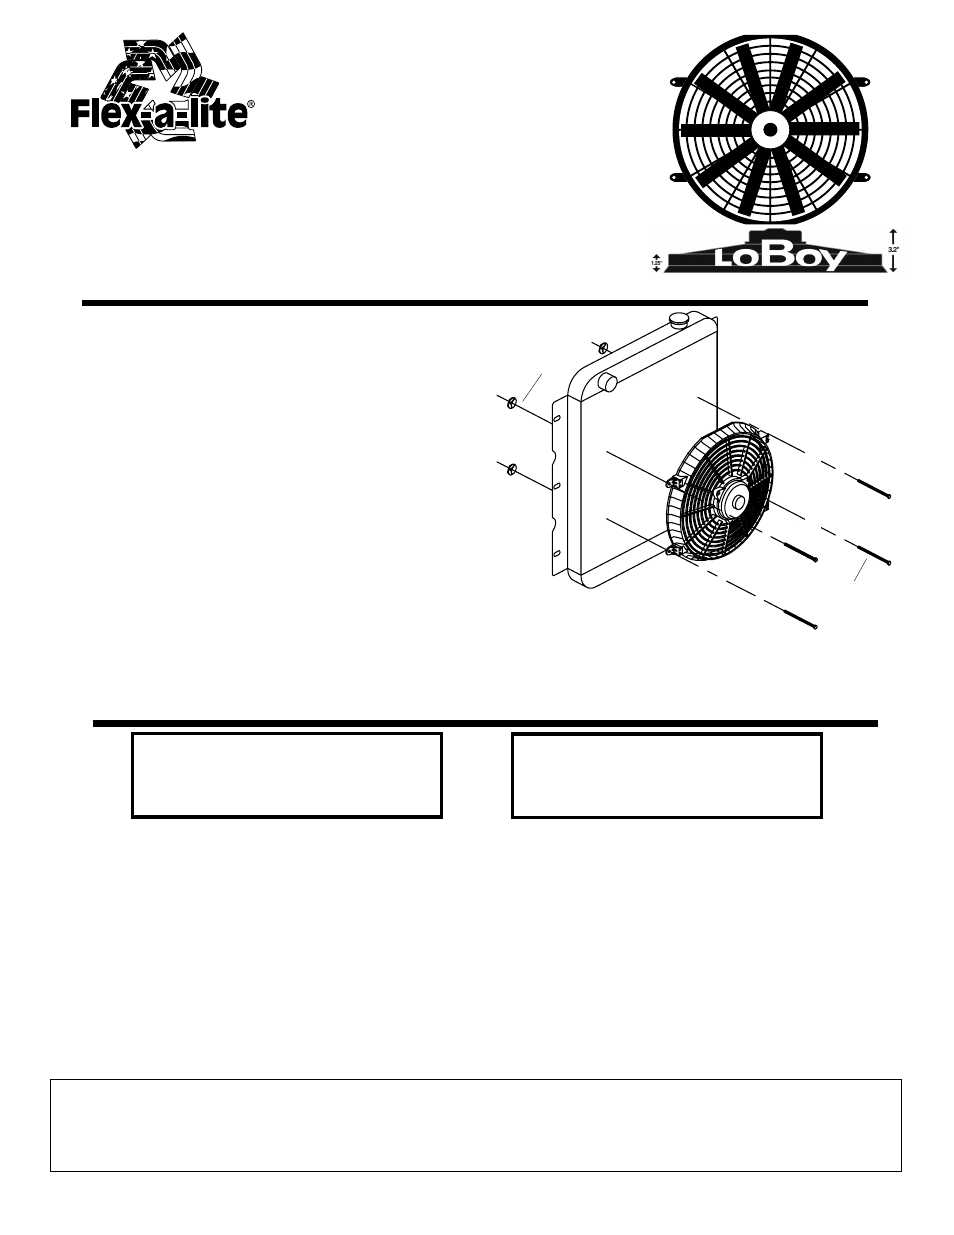 medium resolution of flex a lite 119 pusher loboy electric fan user manual 1 page flex a lite fan controller wiring diagram flex fan wiring